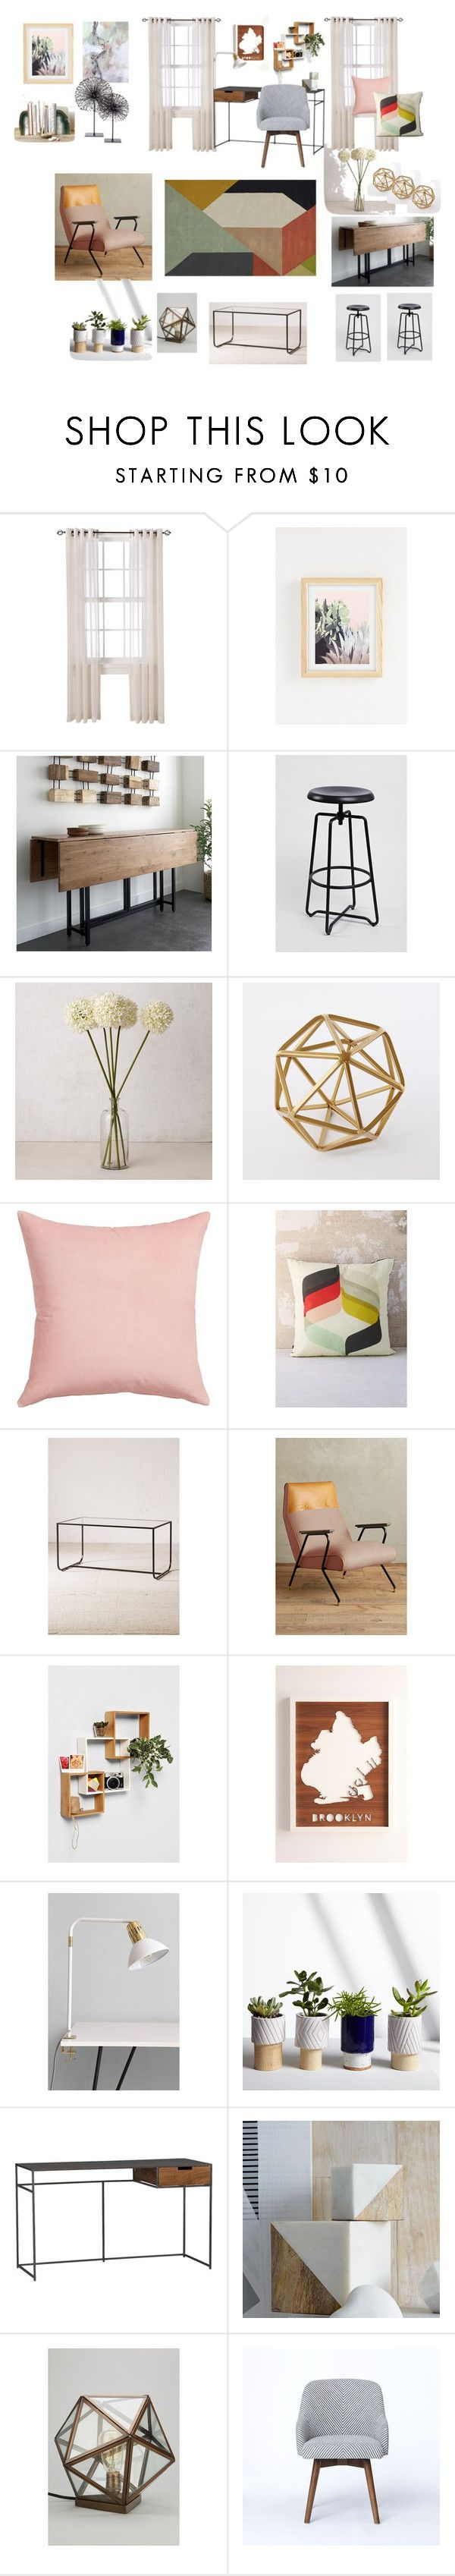 Threshold home decor shop for threshold home decor on polyvore -  Alex Bk By Niesha Finney On Polyvore Featuring Interior Interiors